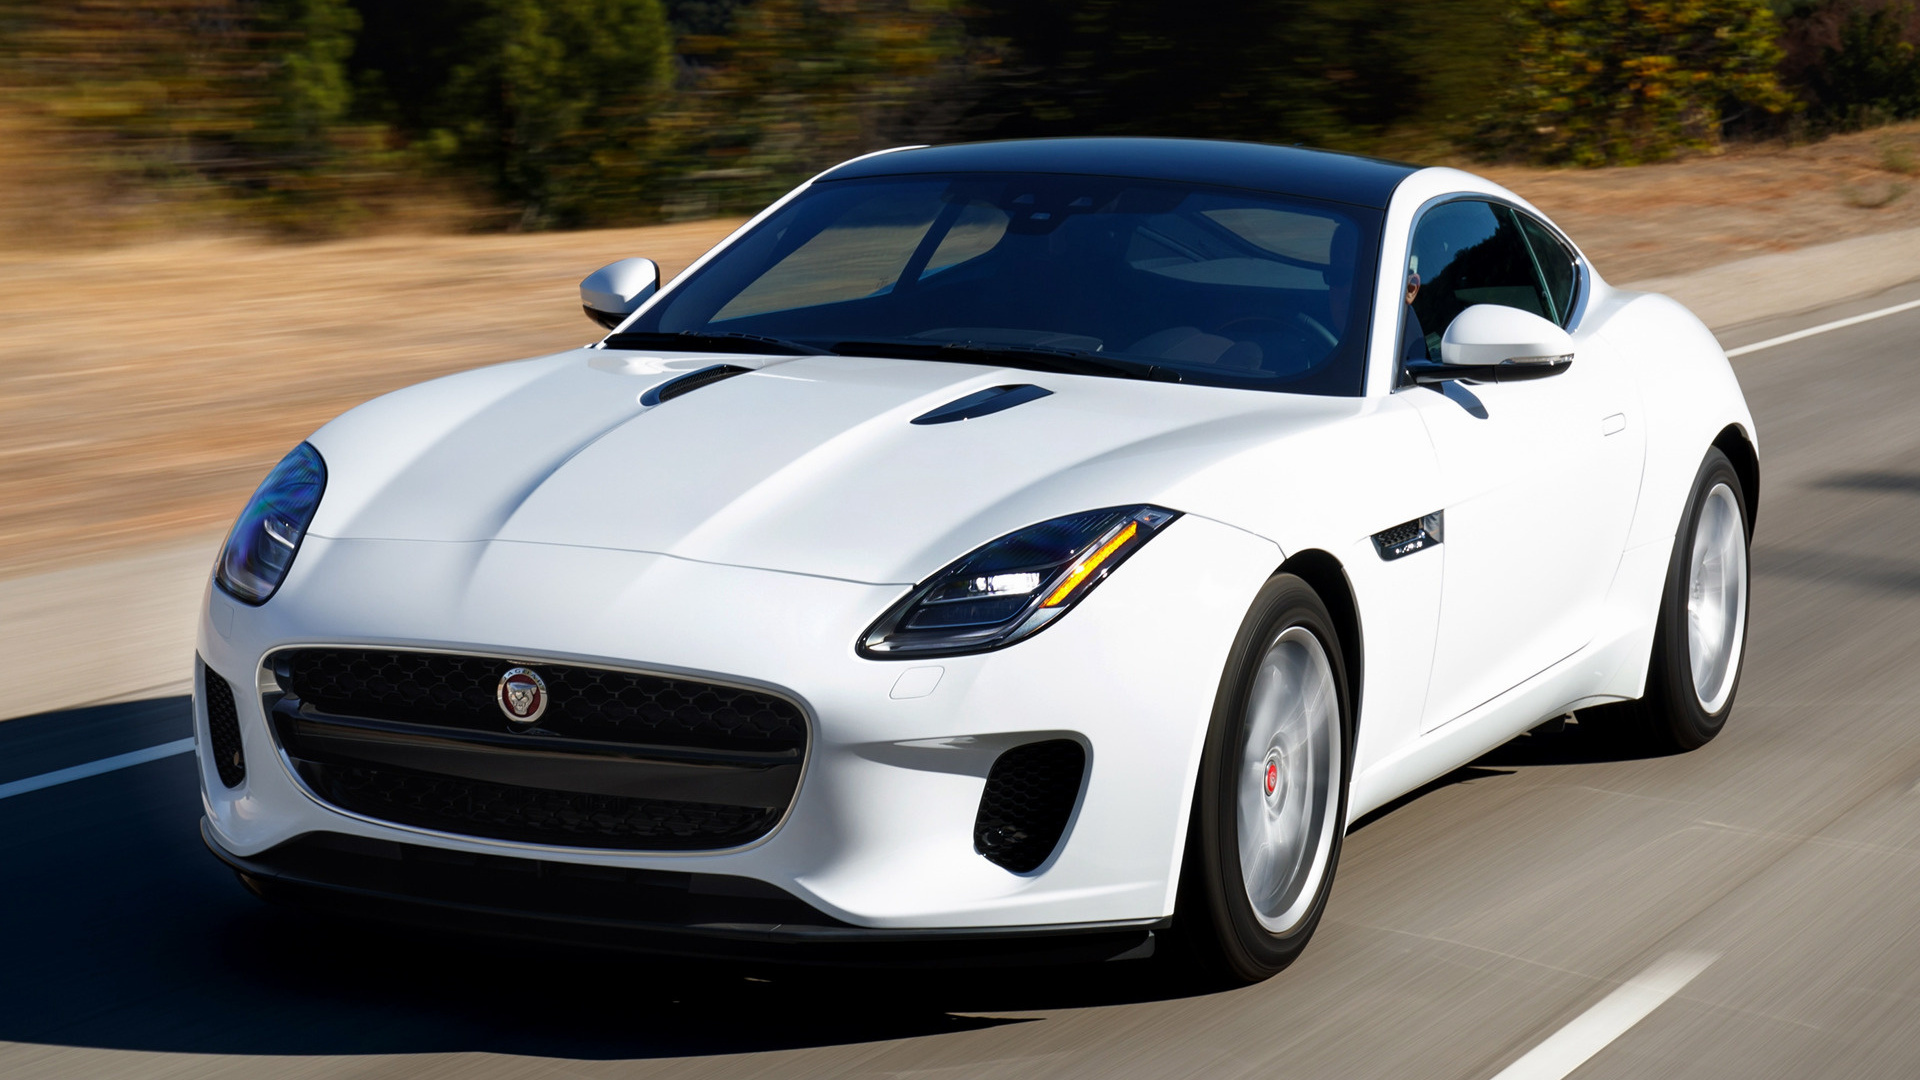 2018 jaguar f type coupe us wallpapers and hd images. Black Bedroom Furniture Sets. Home Design Ideas